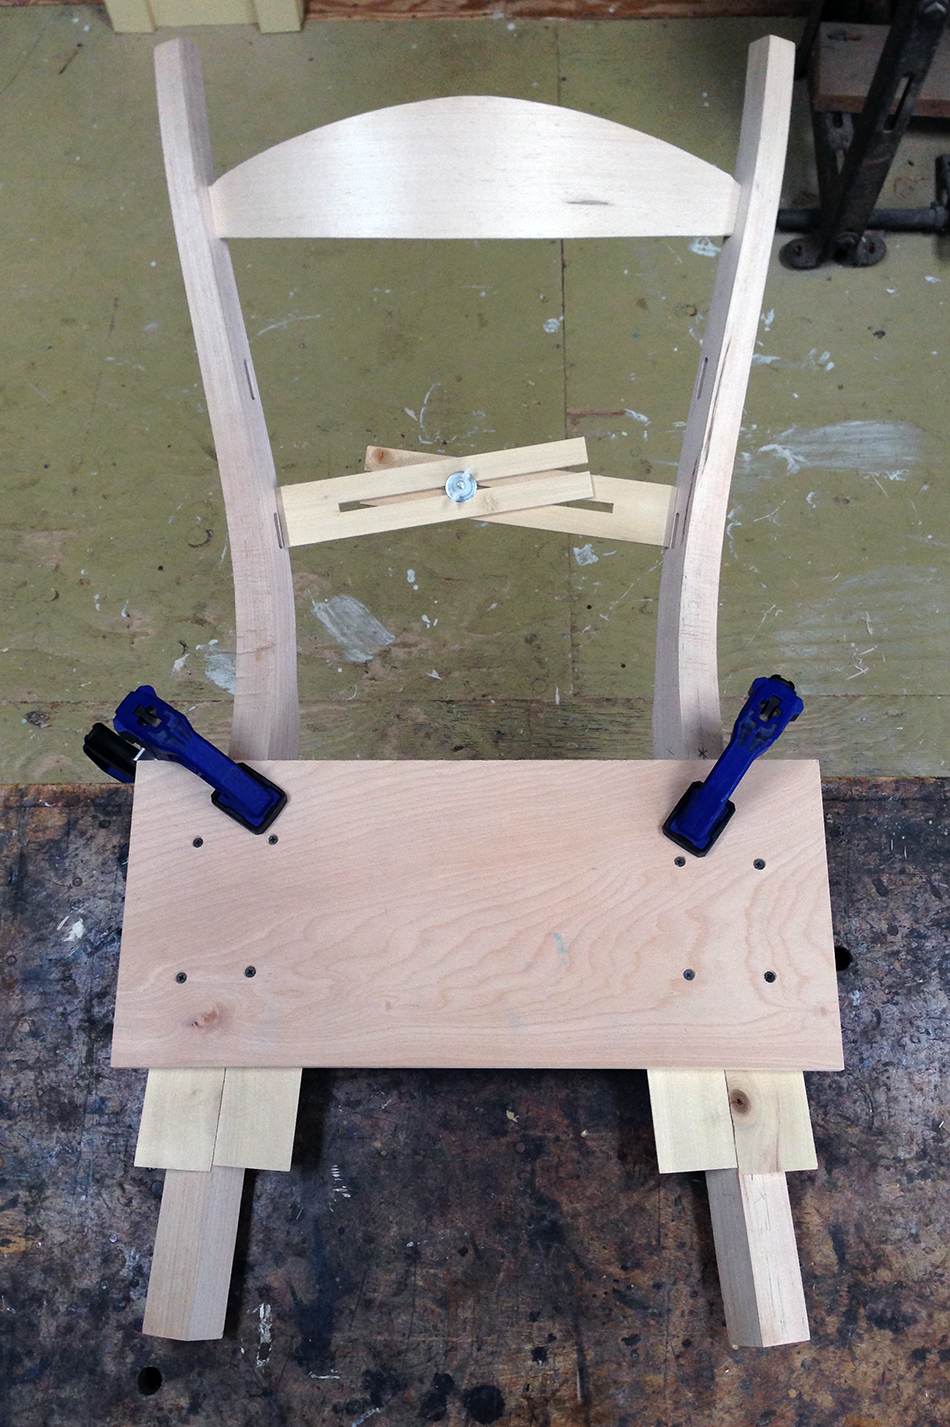 Fitting Slats: Using the measuring jig to measure for the bottom slat